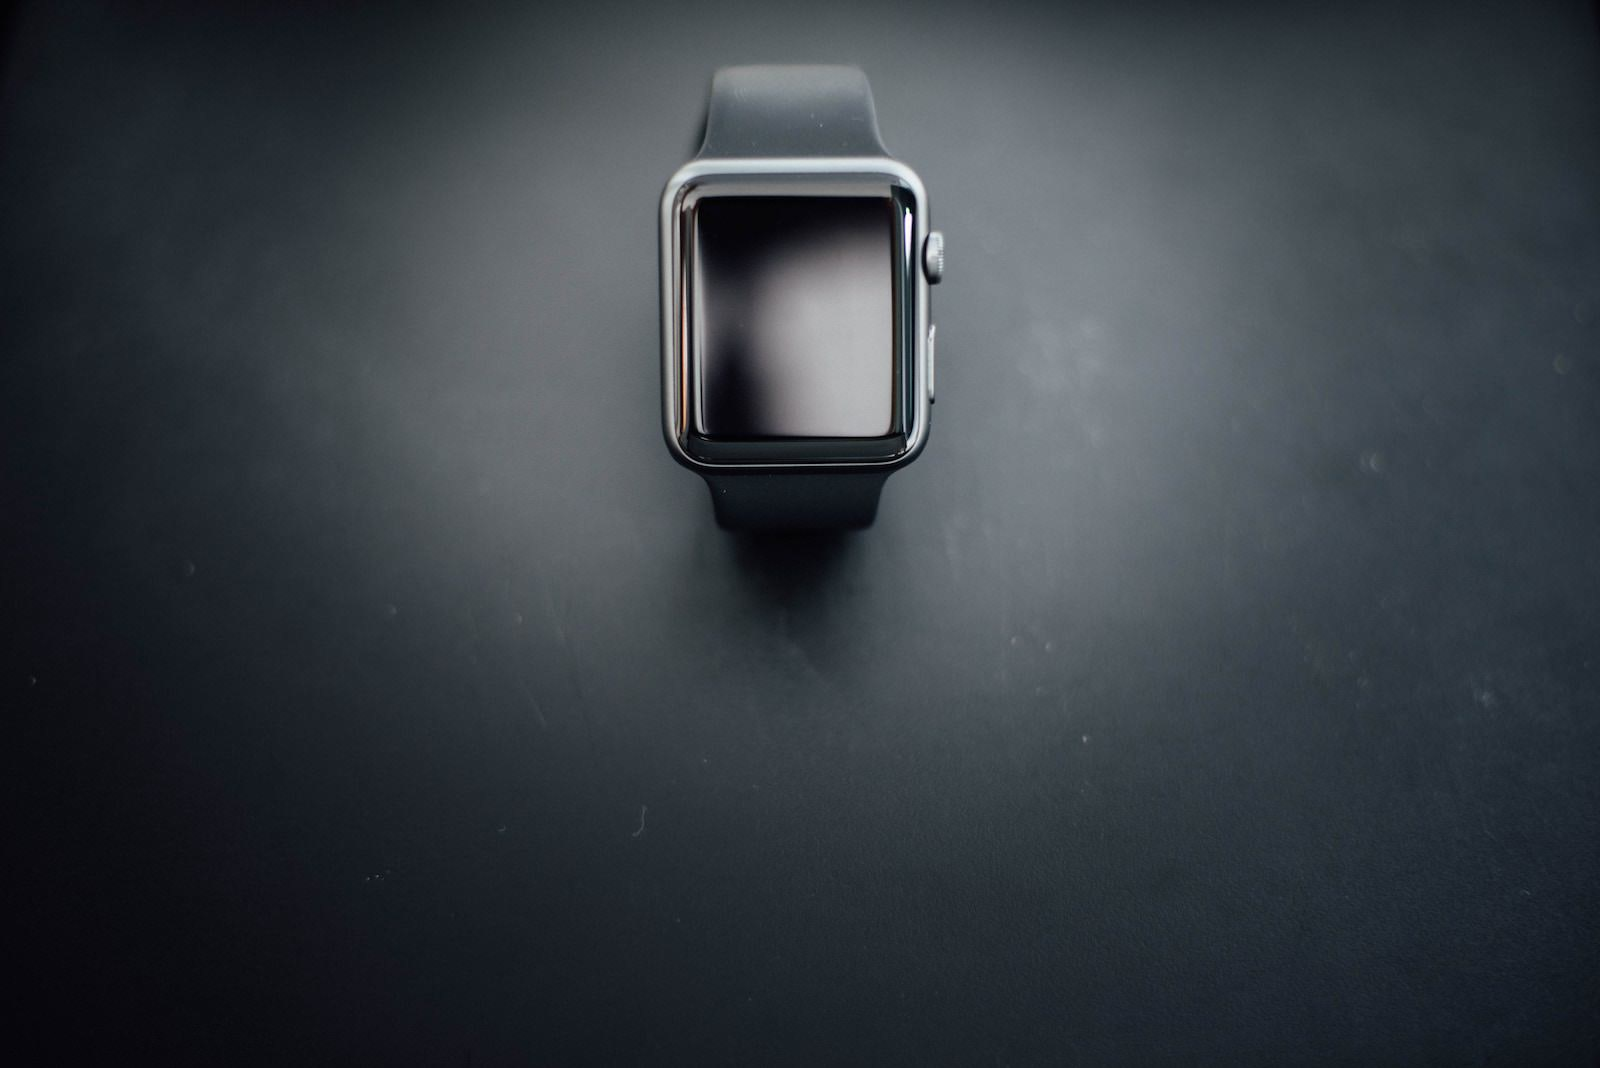 Chuttersnap 299122 unsplash apple watch